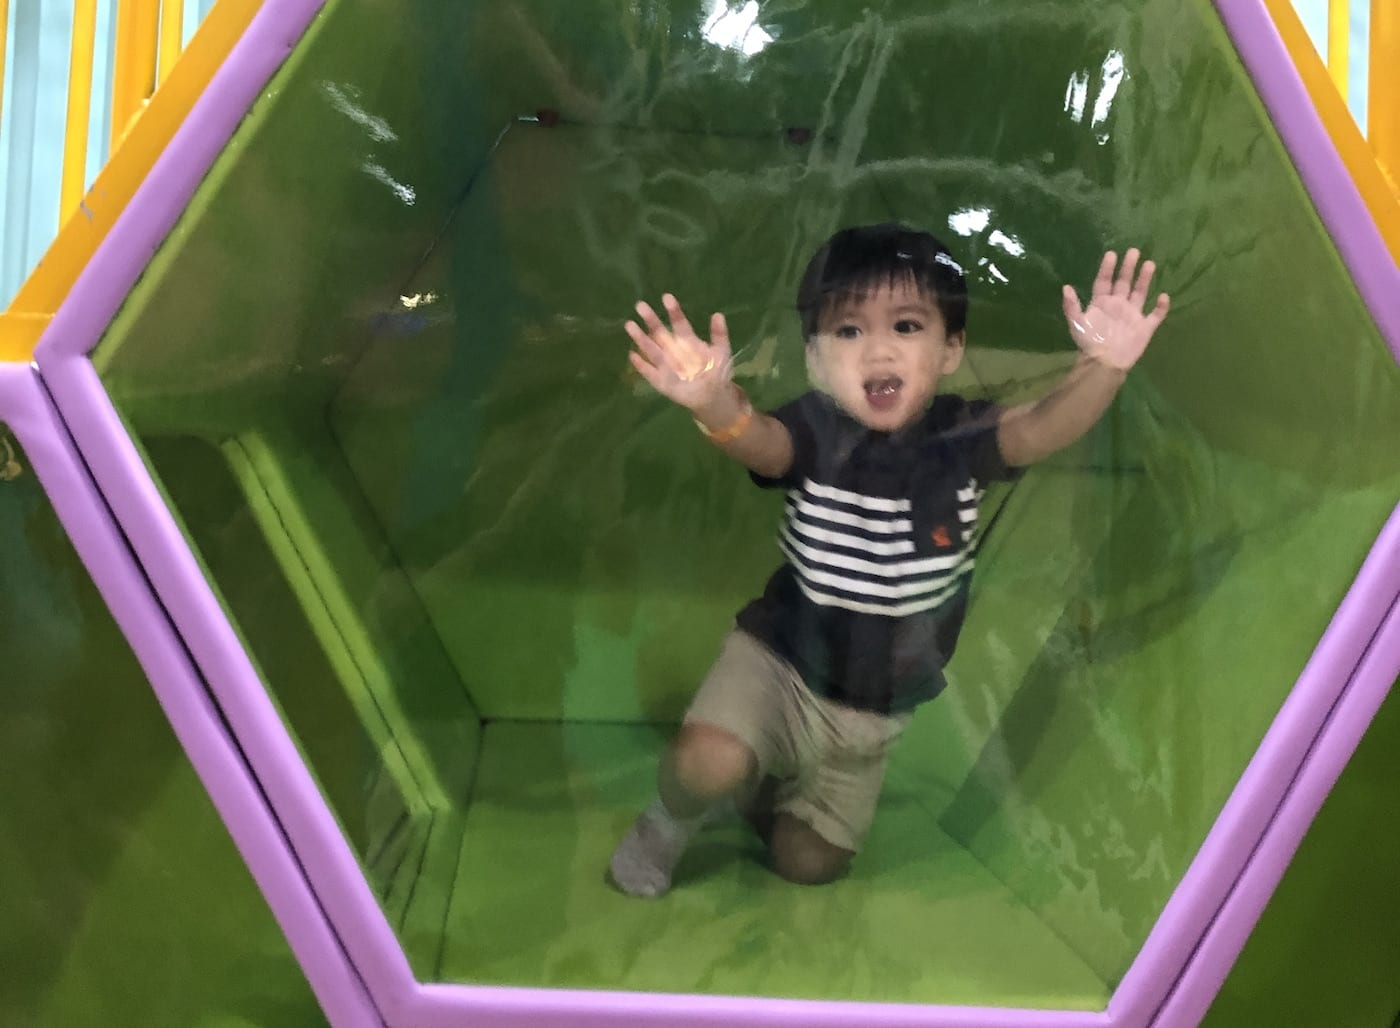 Smigy - an indoor play centre for kids in Singapore